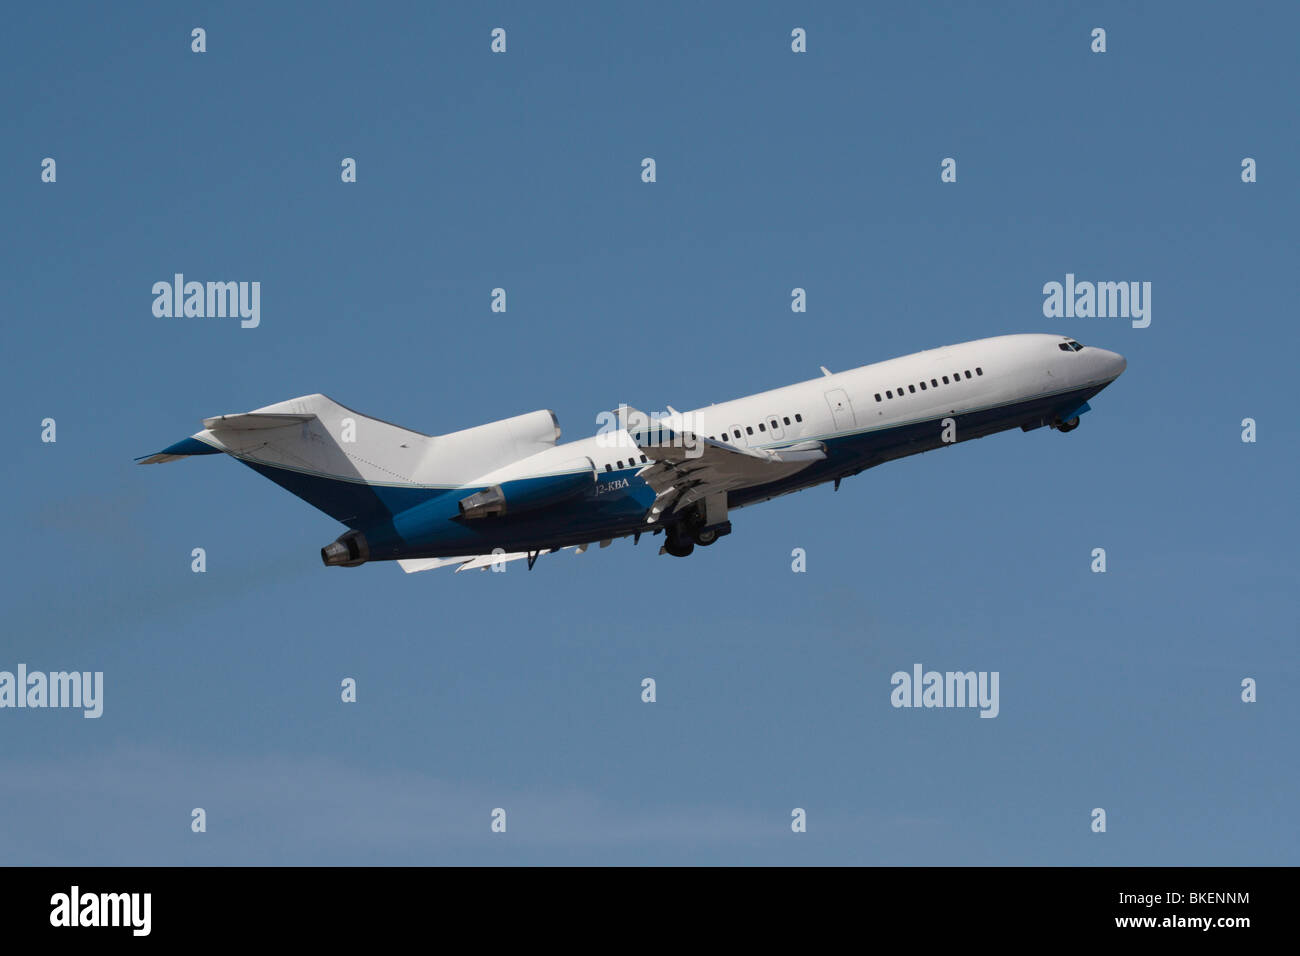 Boeing 727 commercial passenger jet plane flying on takeoff against a blue sky - Stock Image